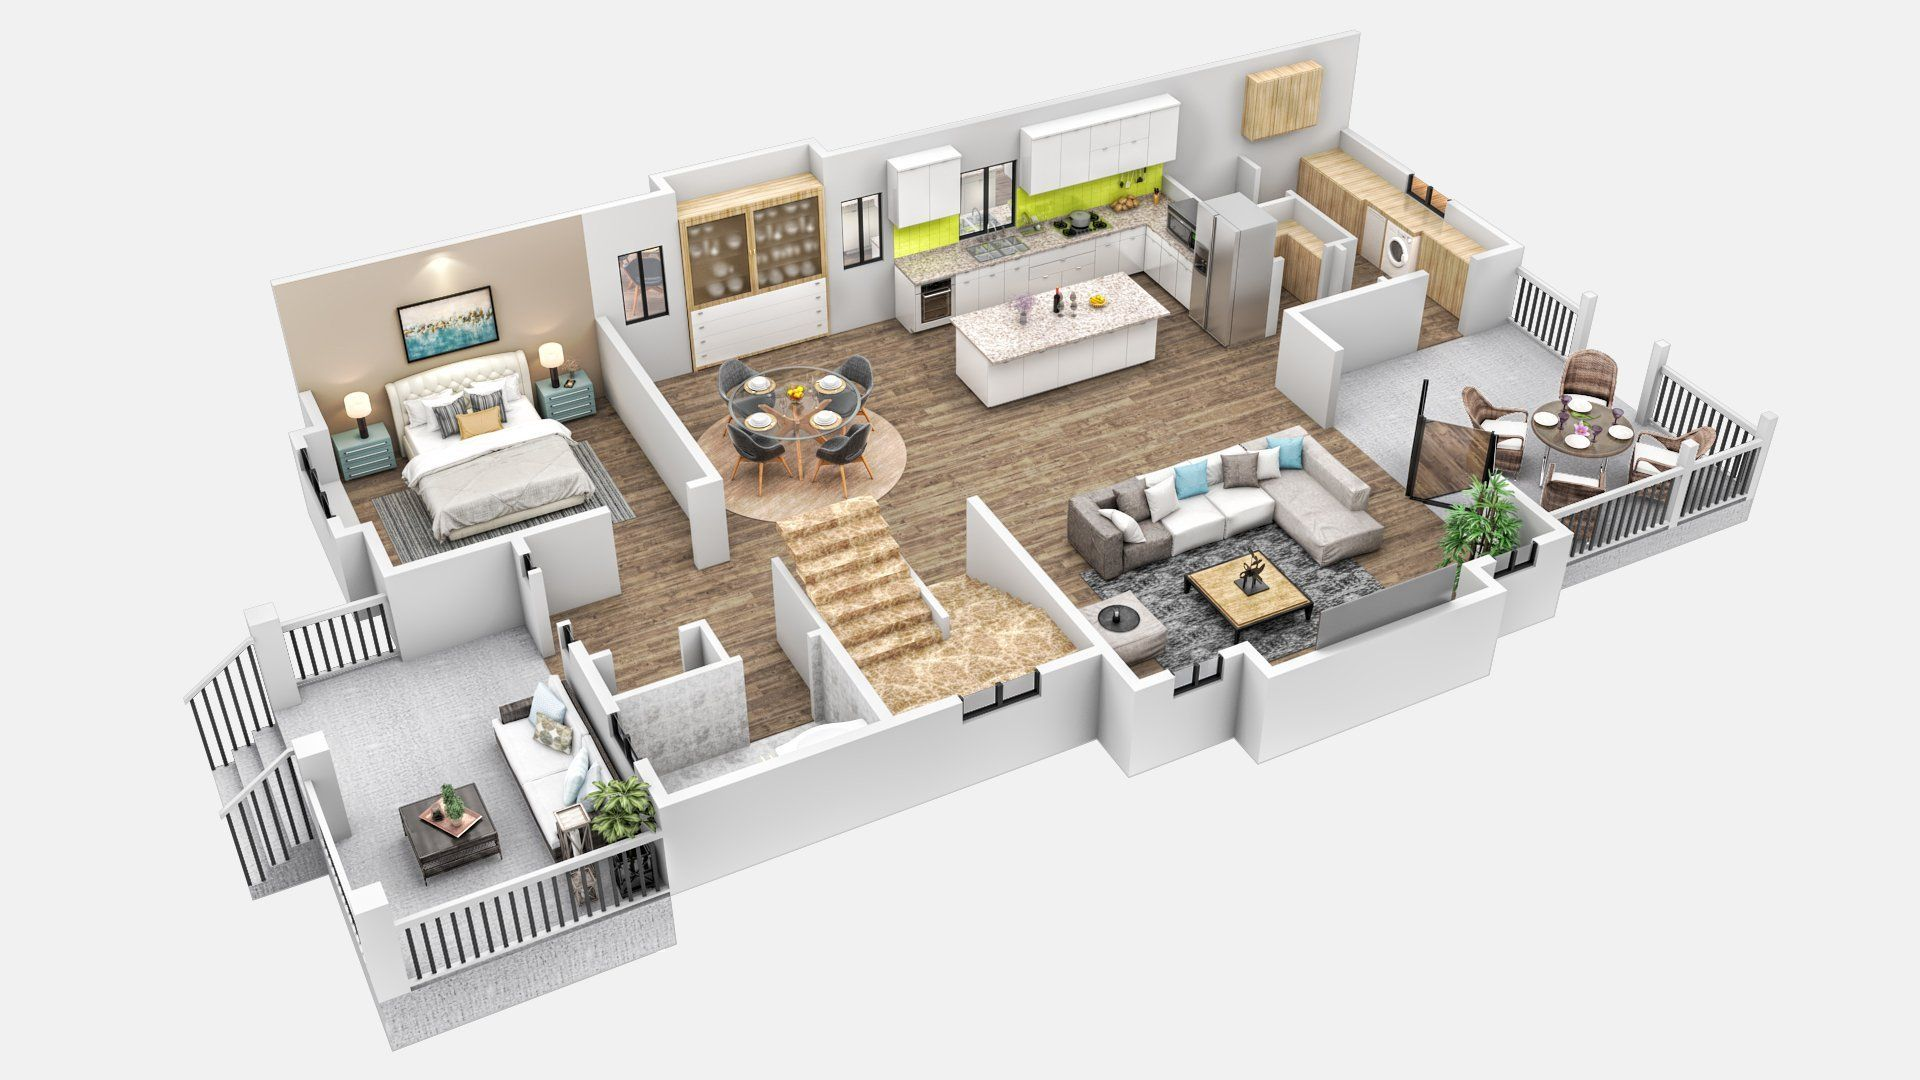 buy 3D architectural rendering services The LittleKnown